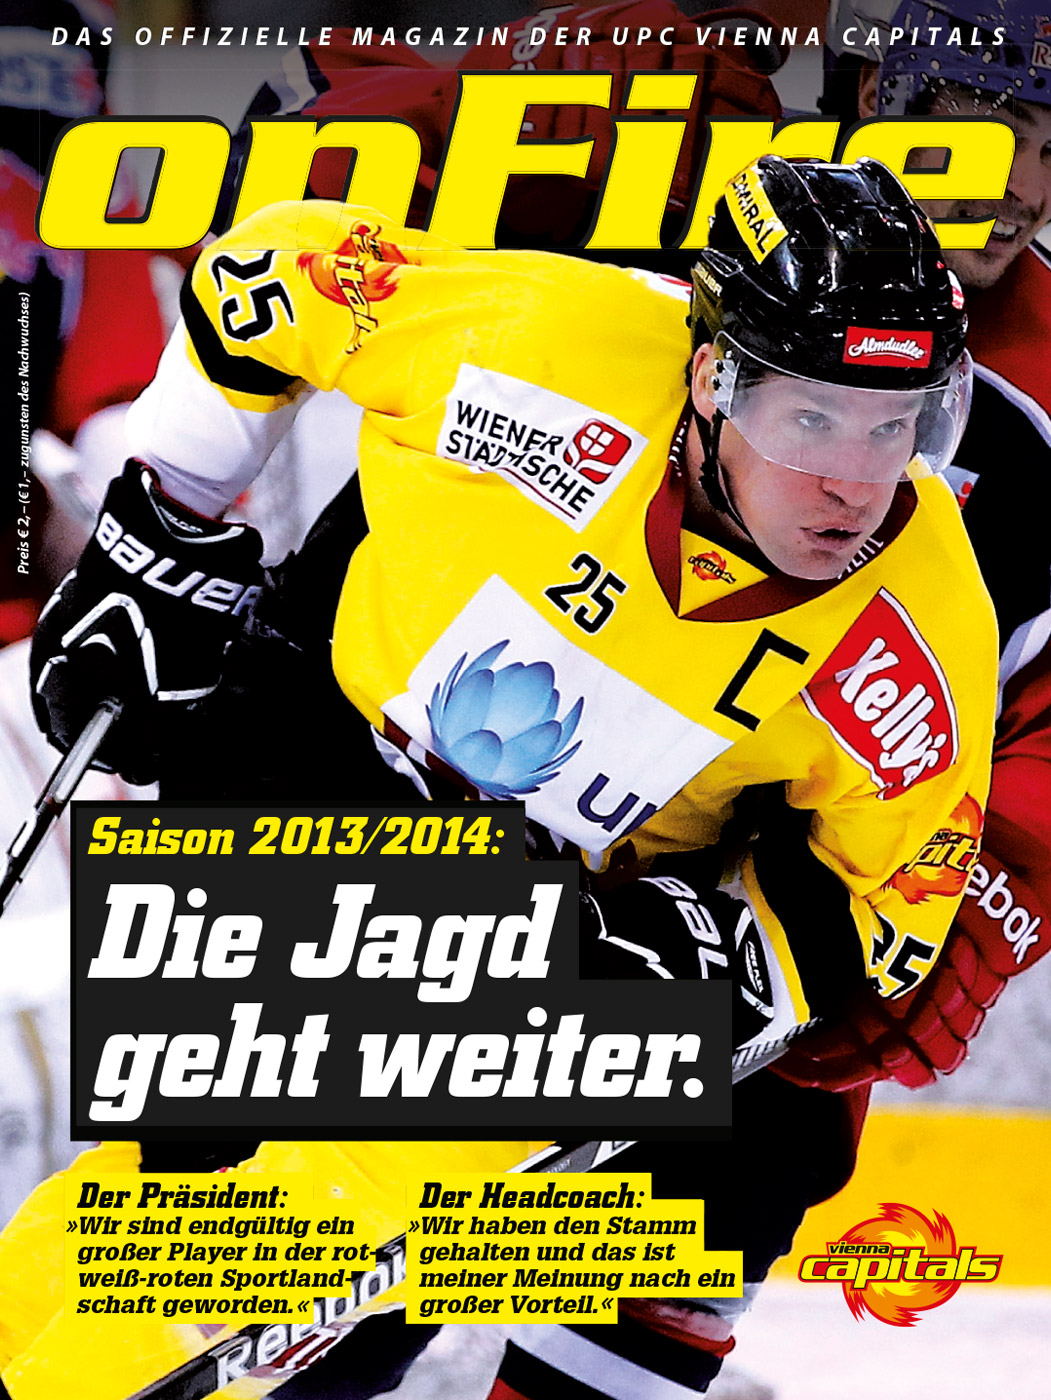 capitals_onfire-cover_2013-2